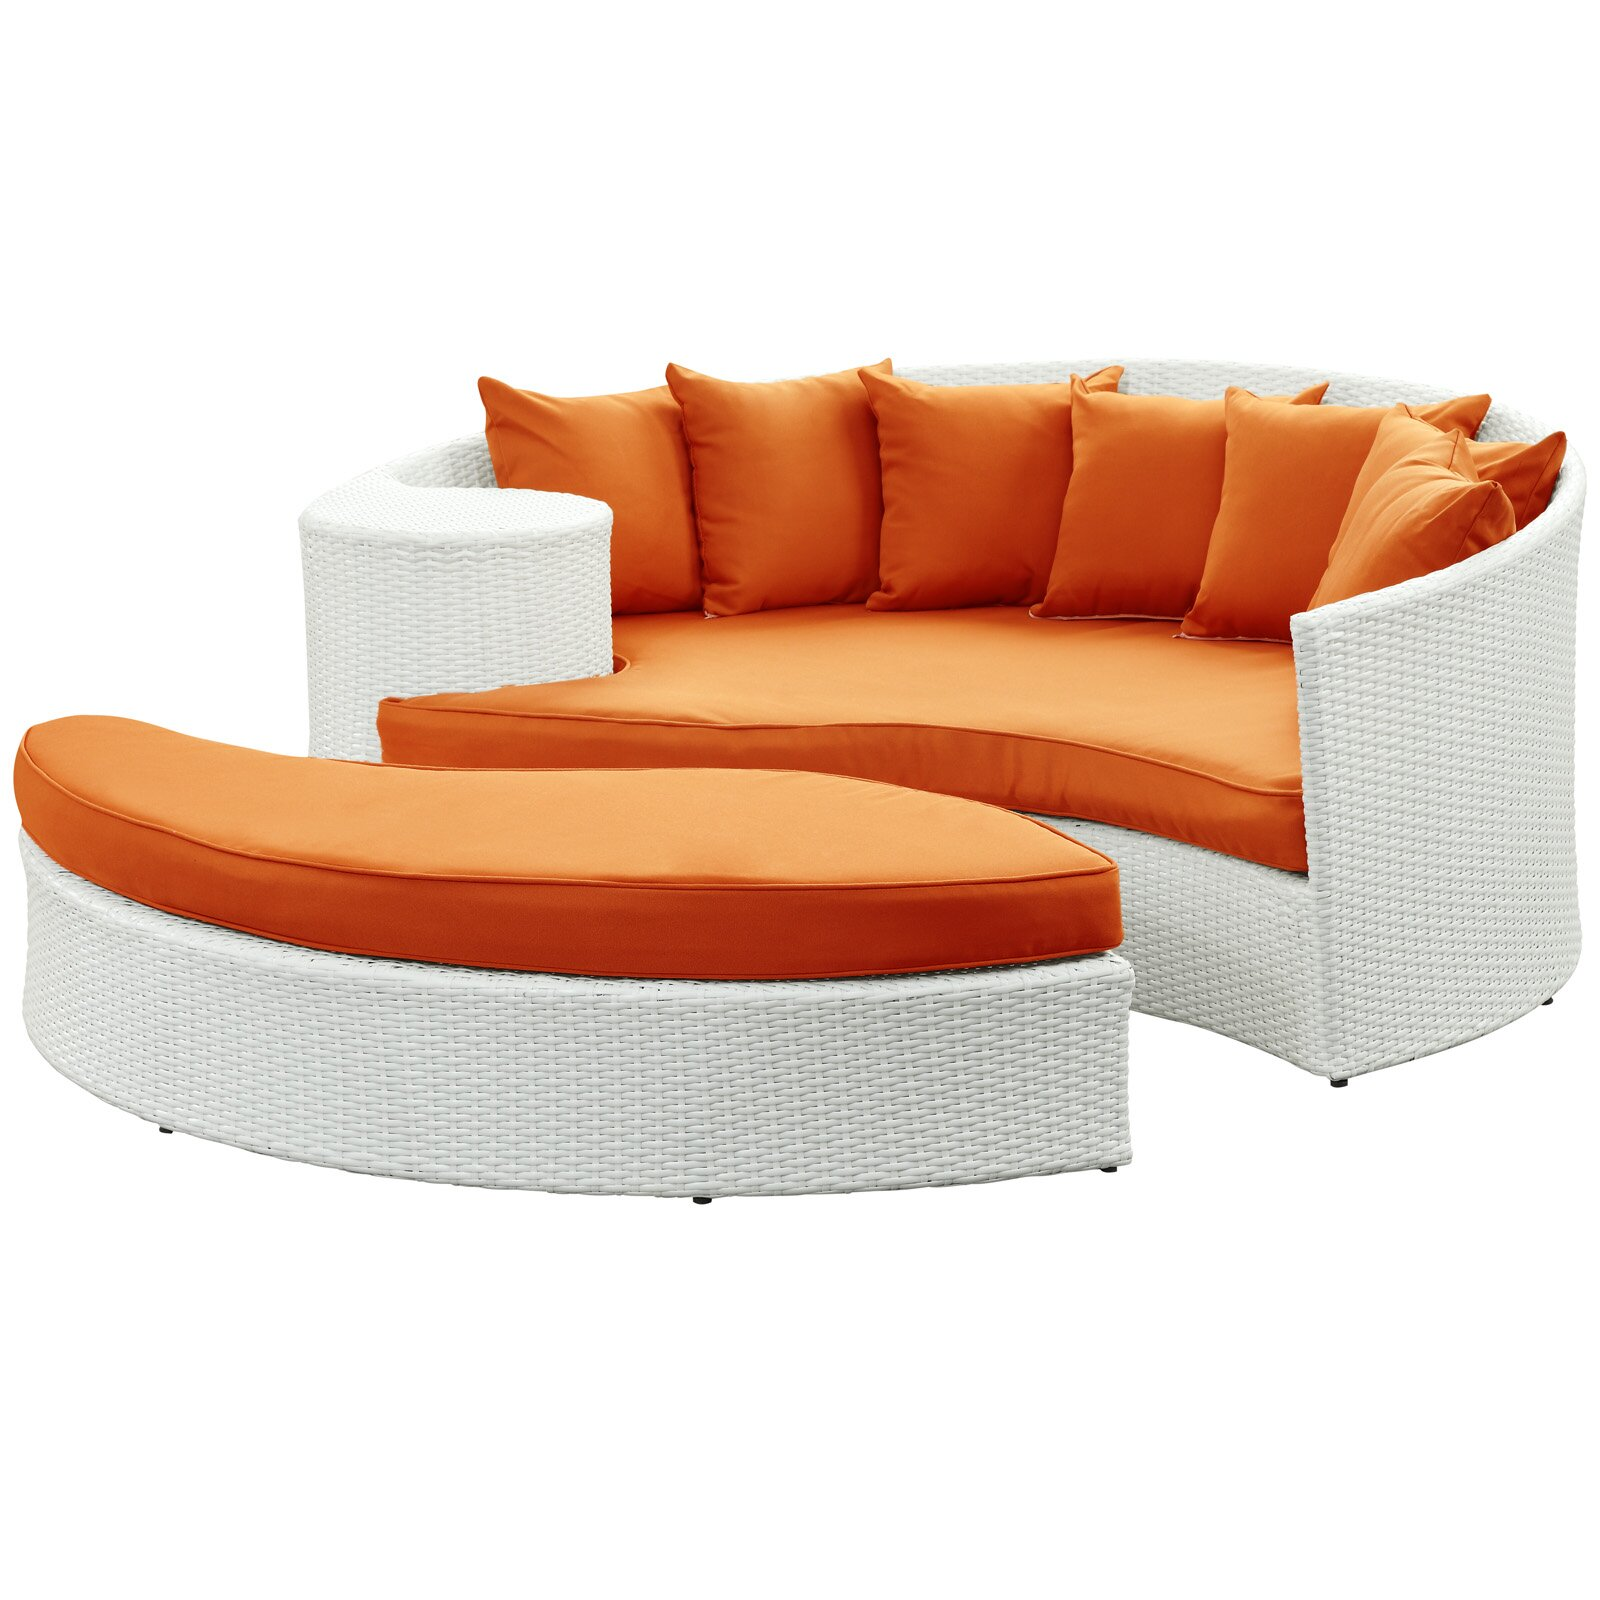 Brayden Studio Greening Outdoor Daybed with Ottoman